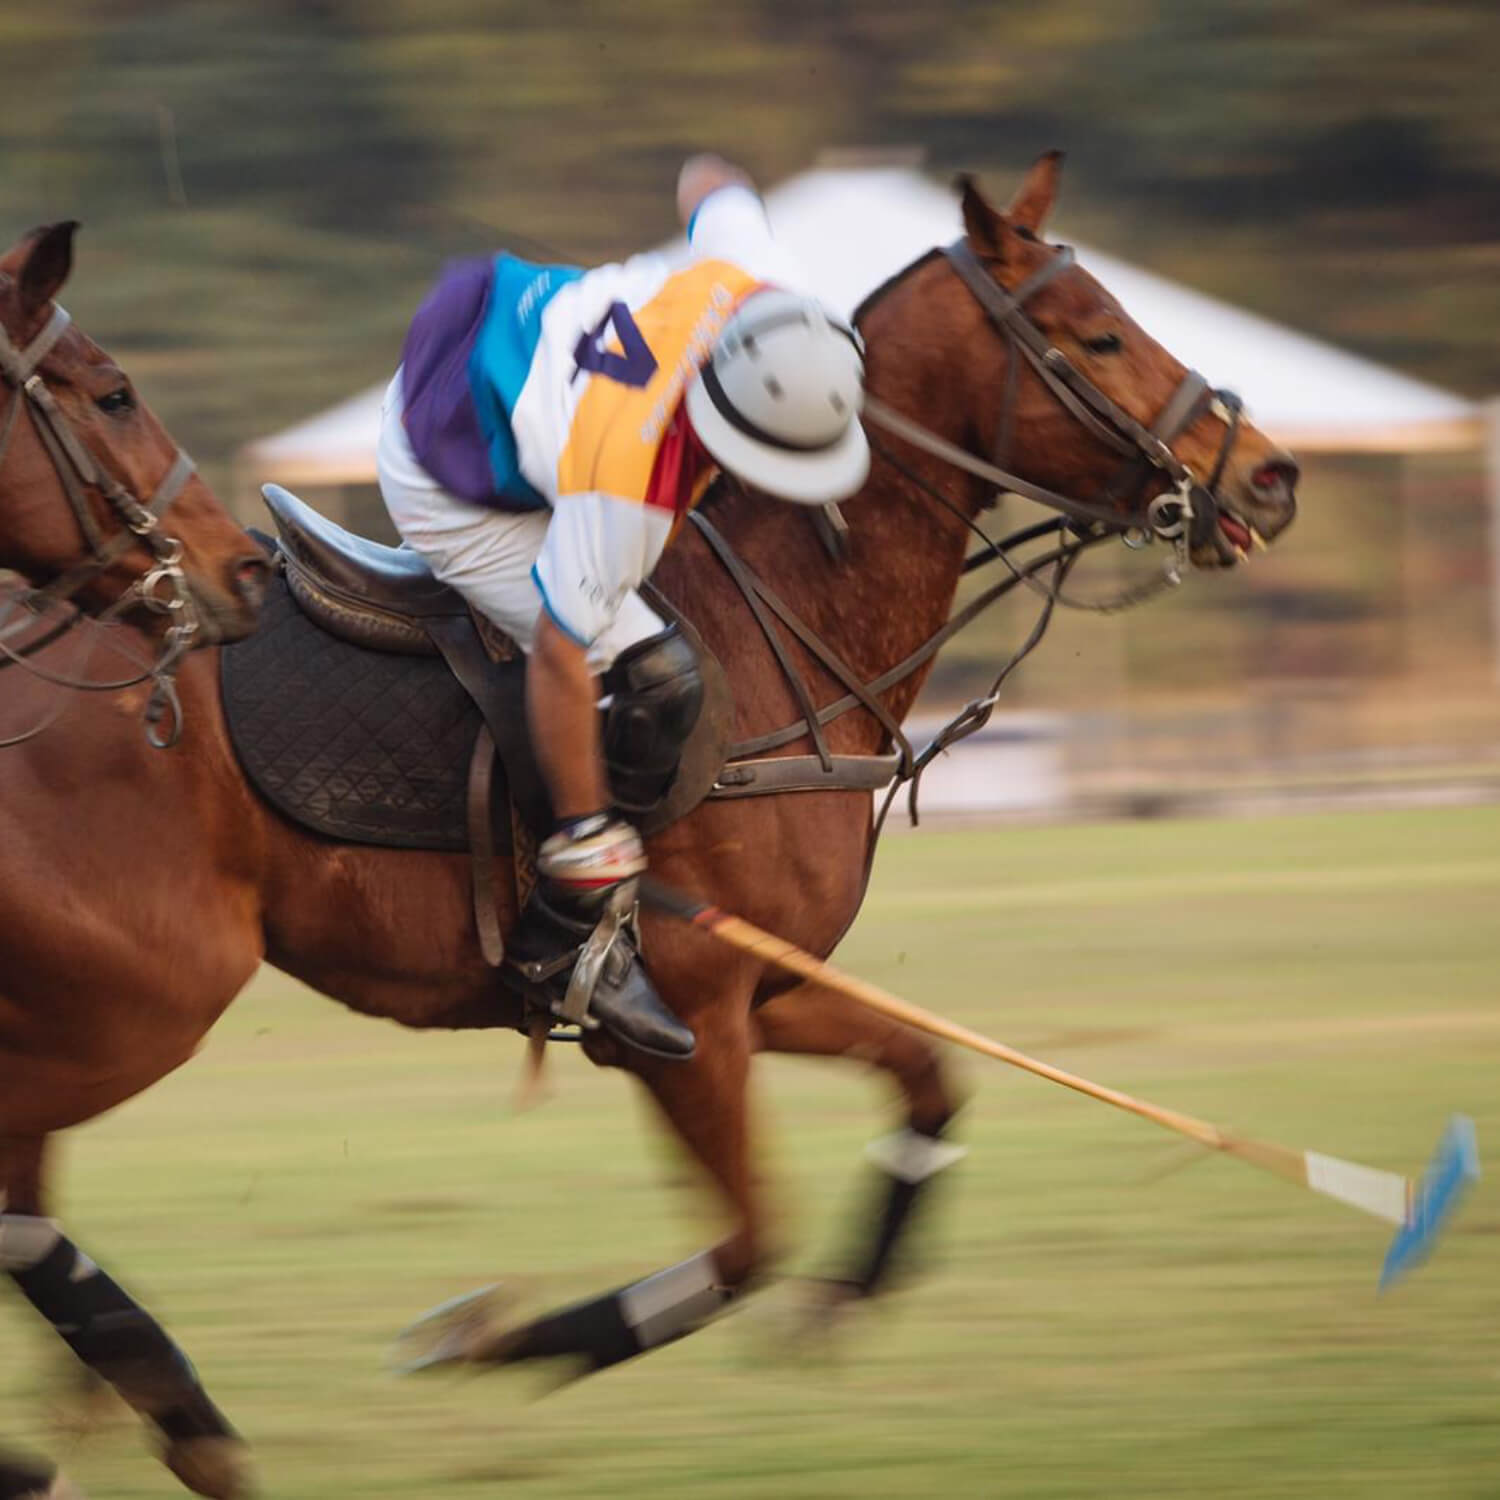 The Royal Polo Experience